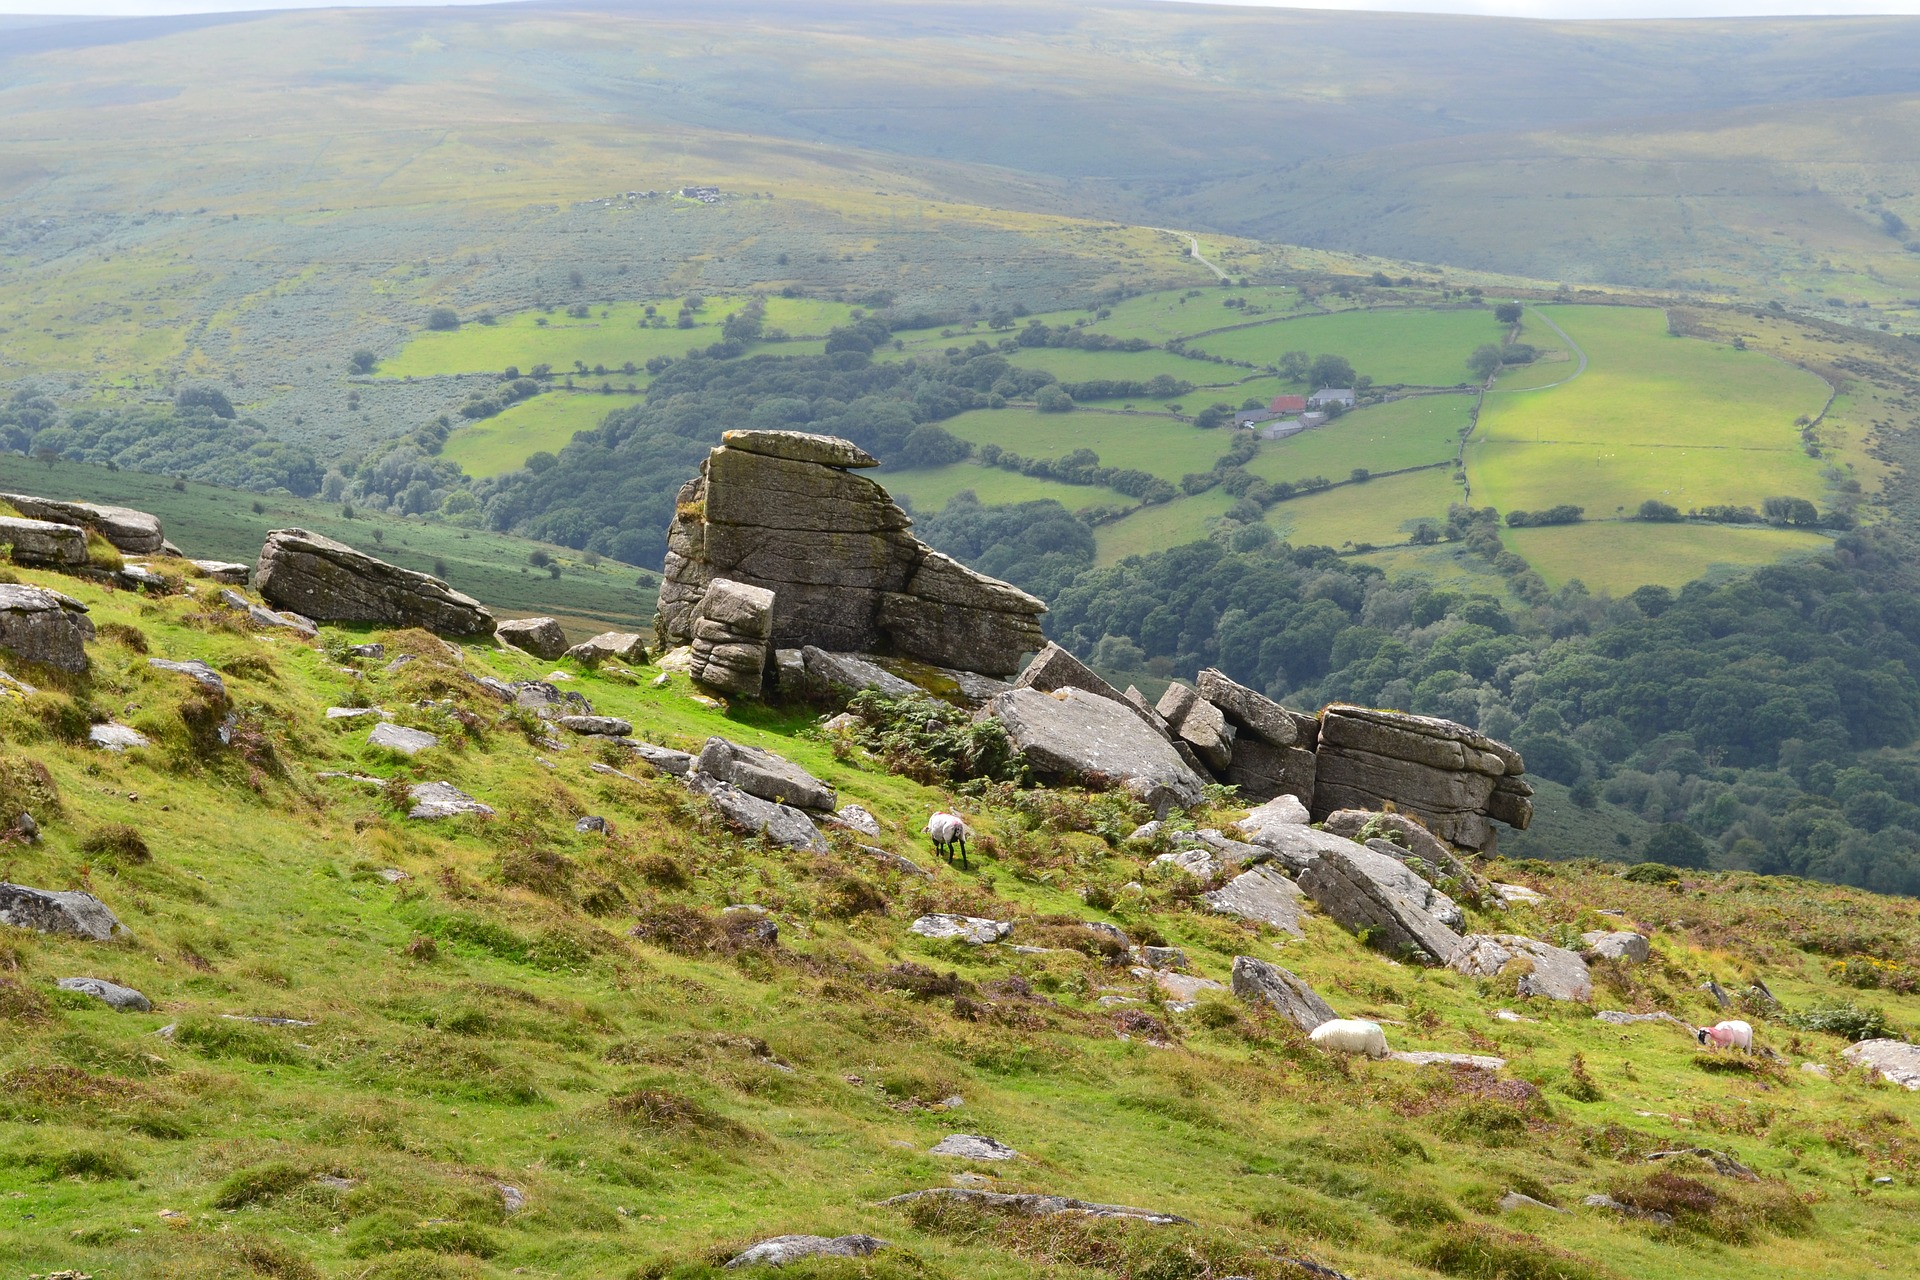 Things to do on Dartmoor